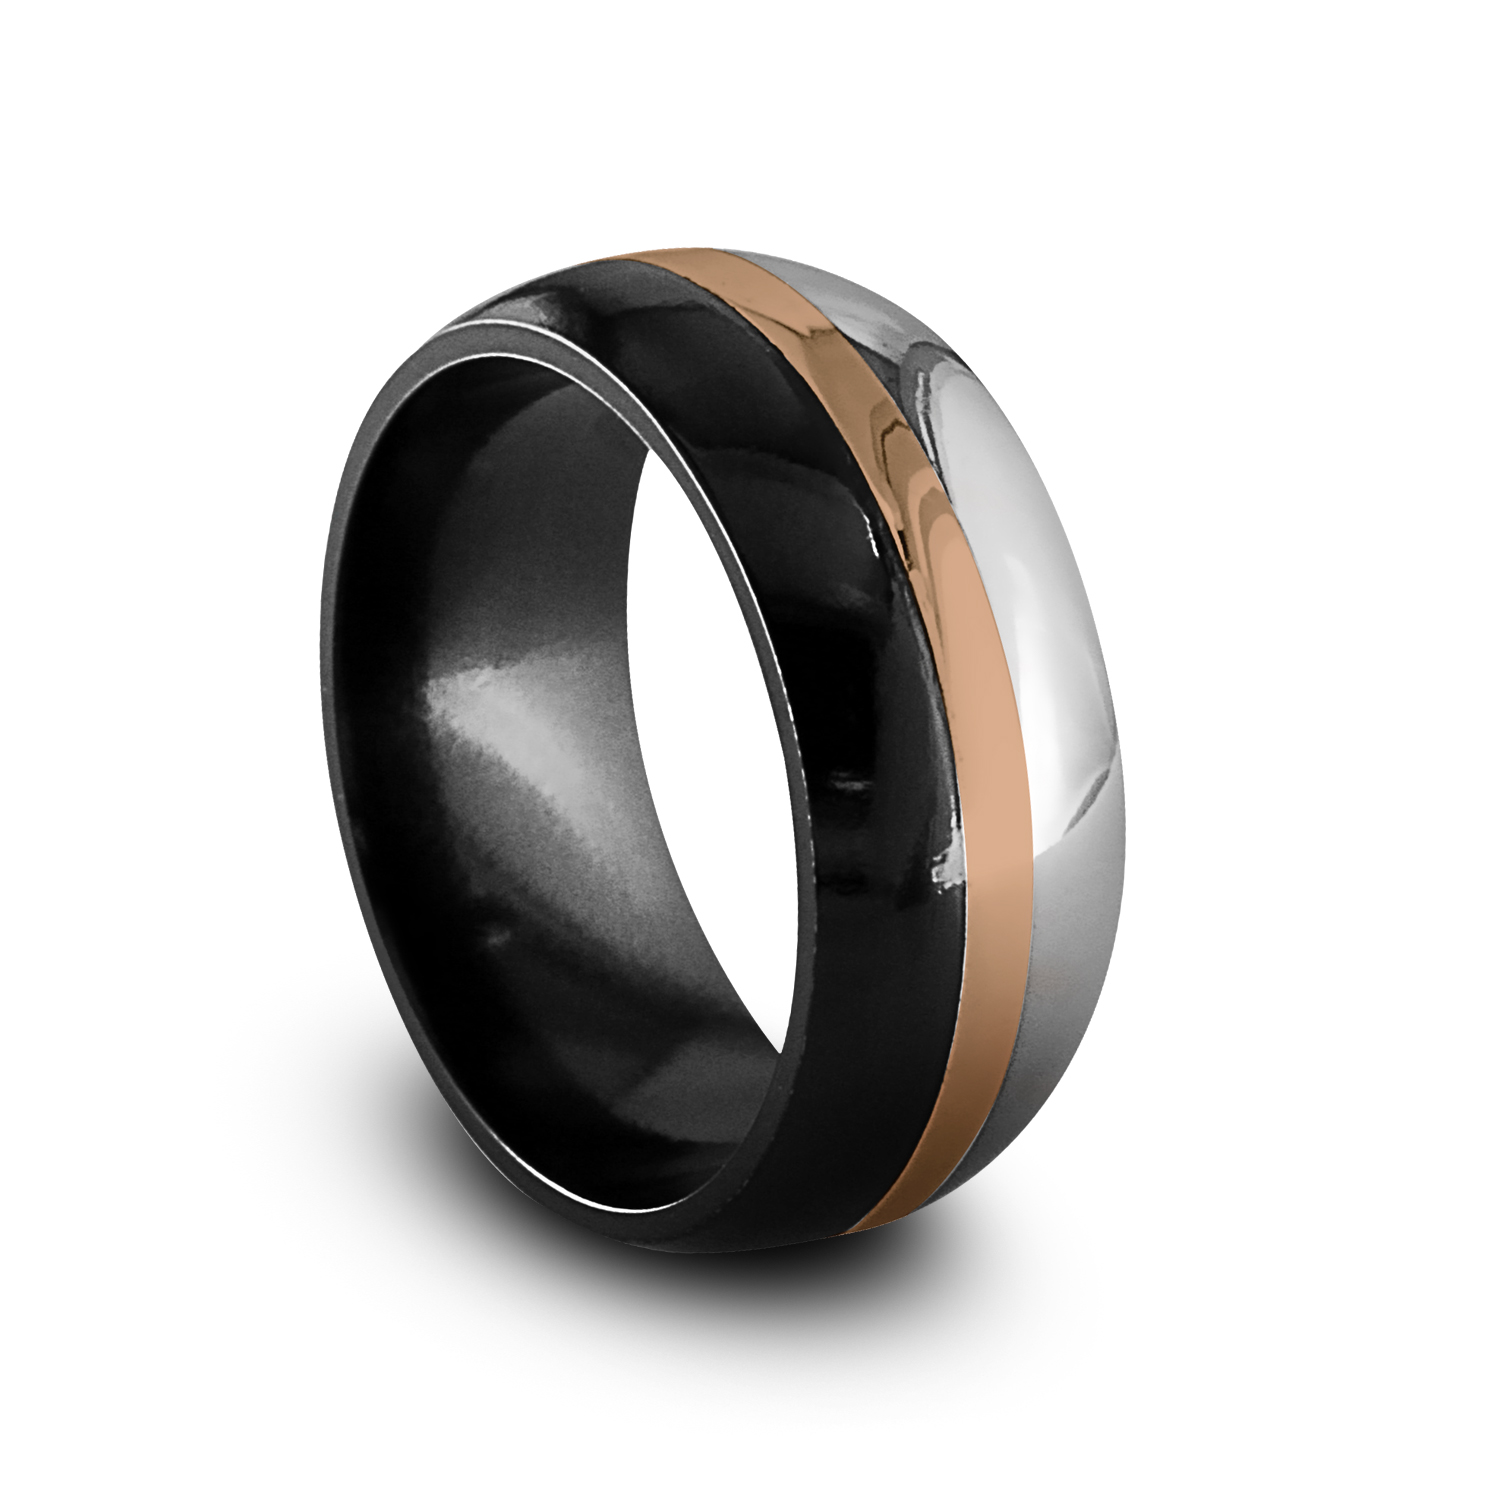 biker black polished stainless in amazon phenovo rings ring steel signet jewellery men band dp mens us solid